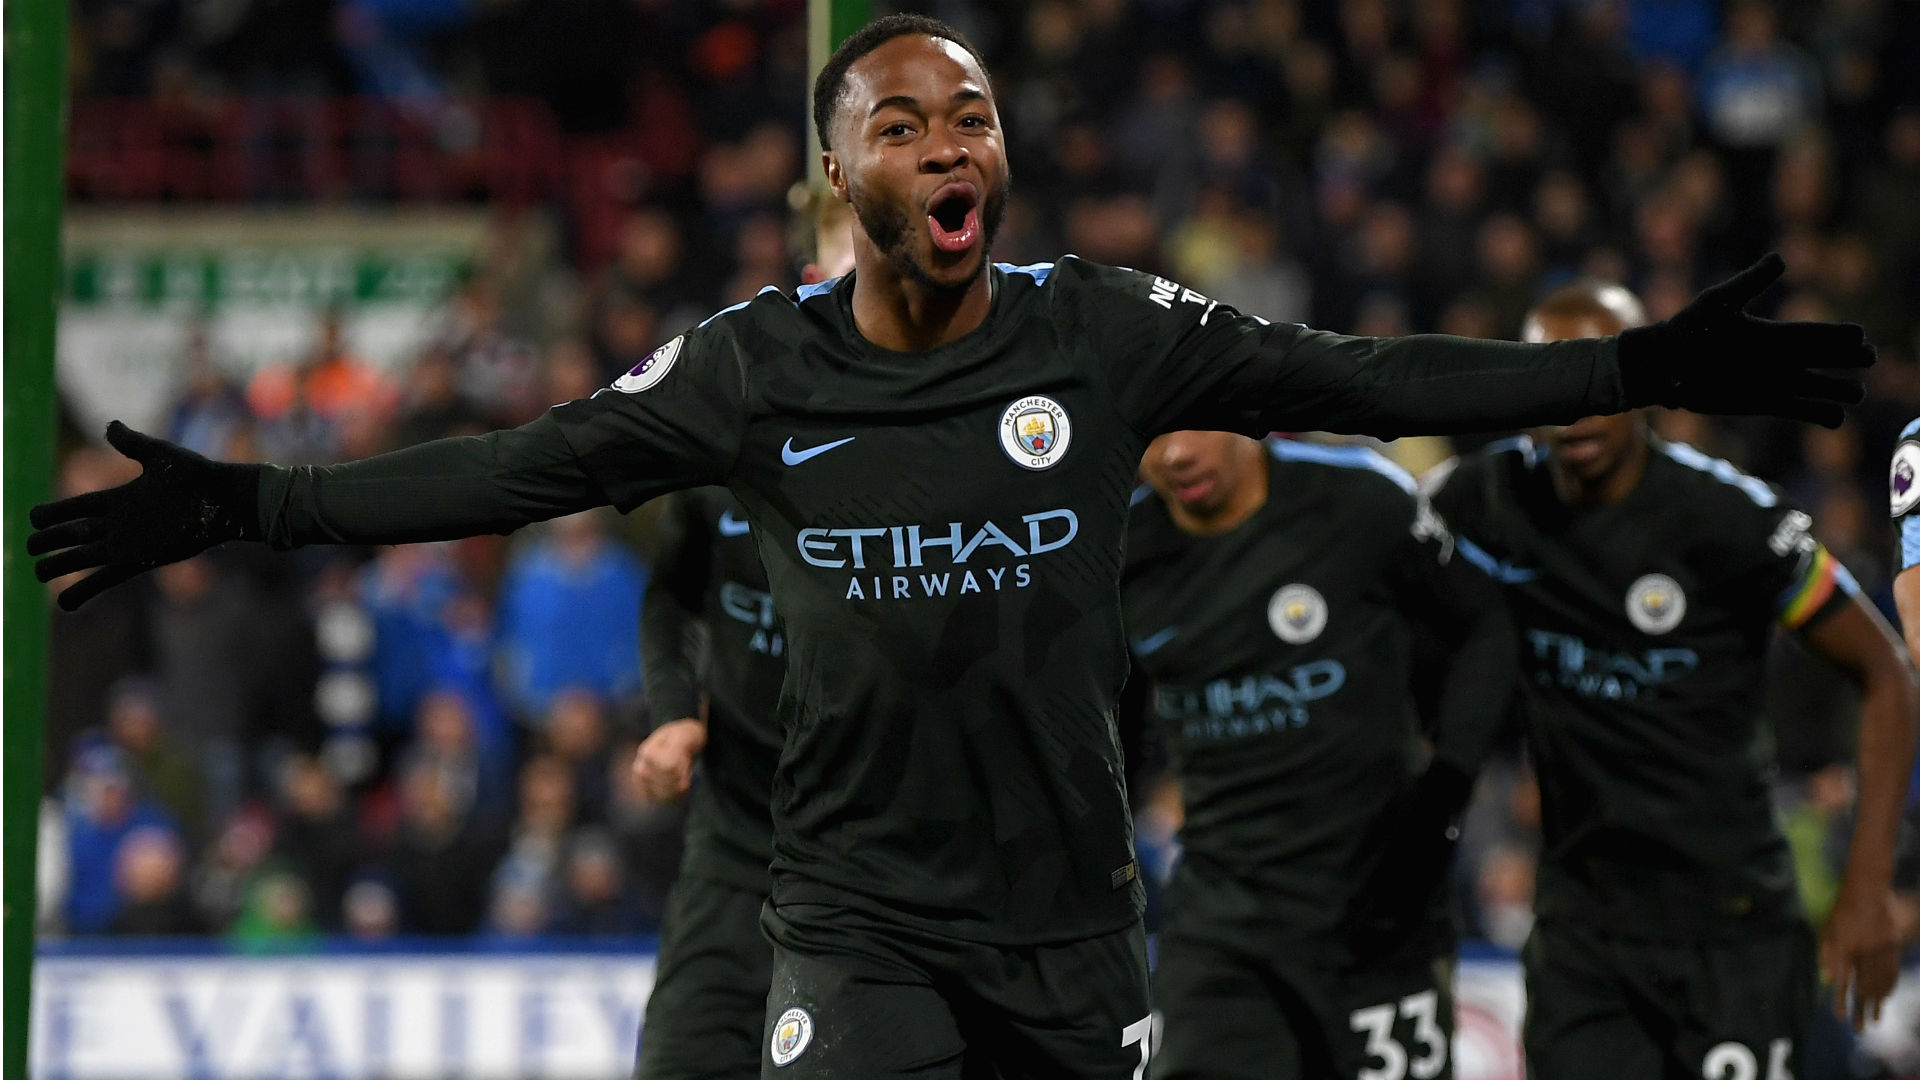 Cold weather win has Pep, Kompany channeling